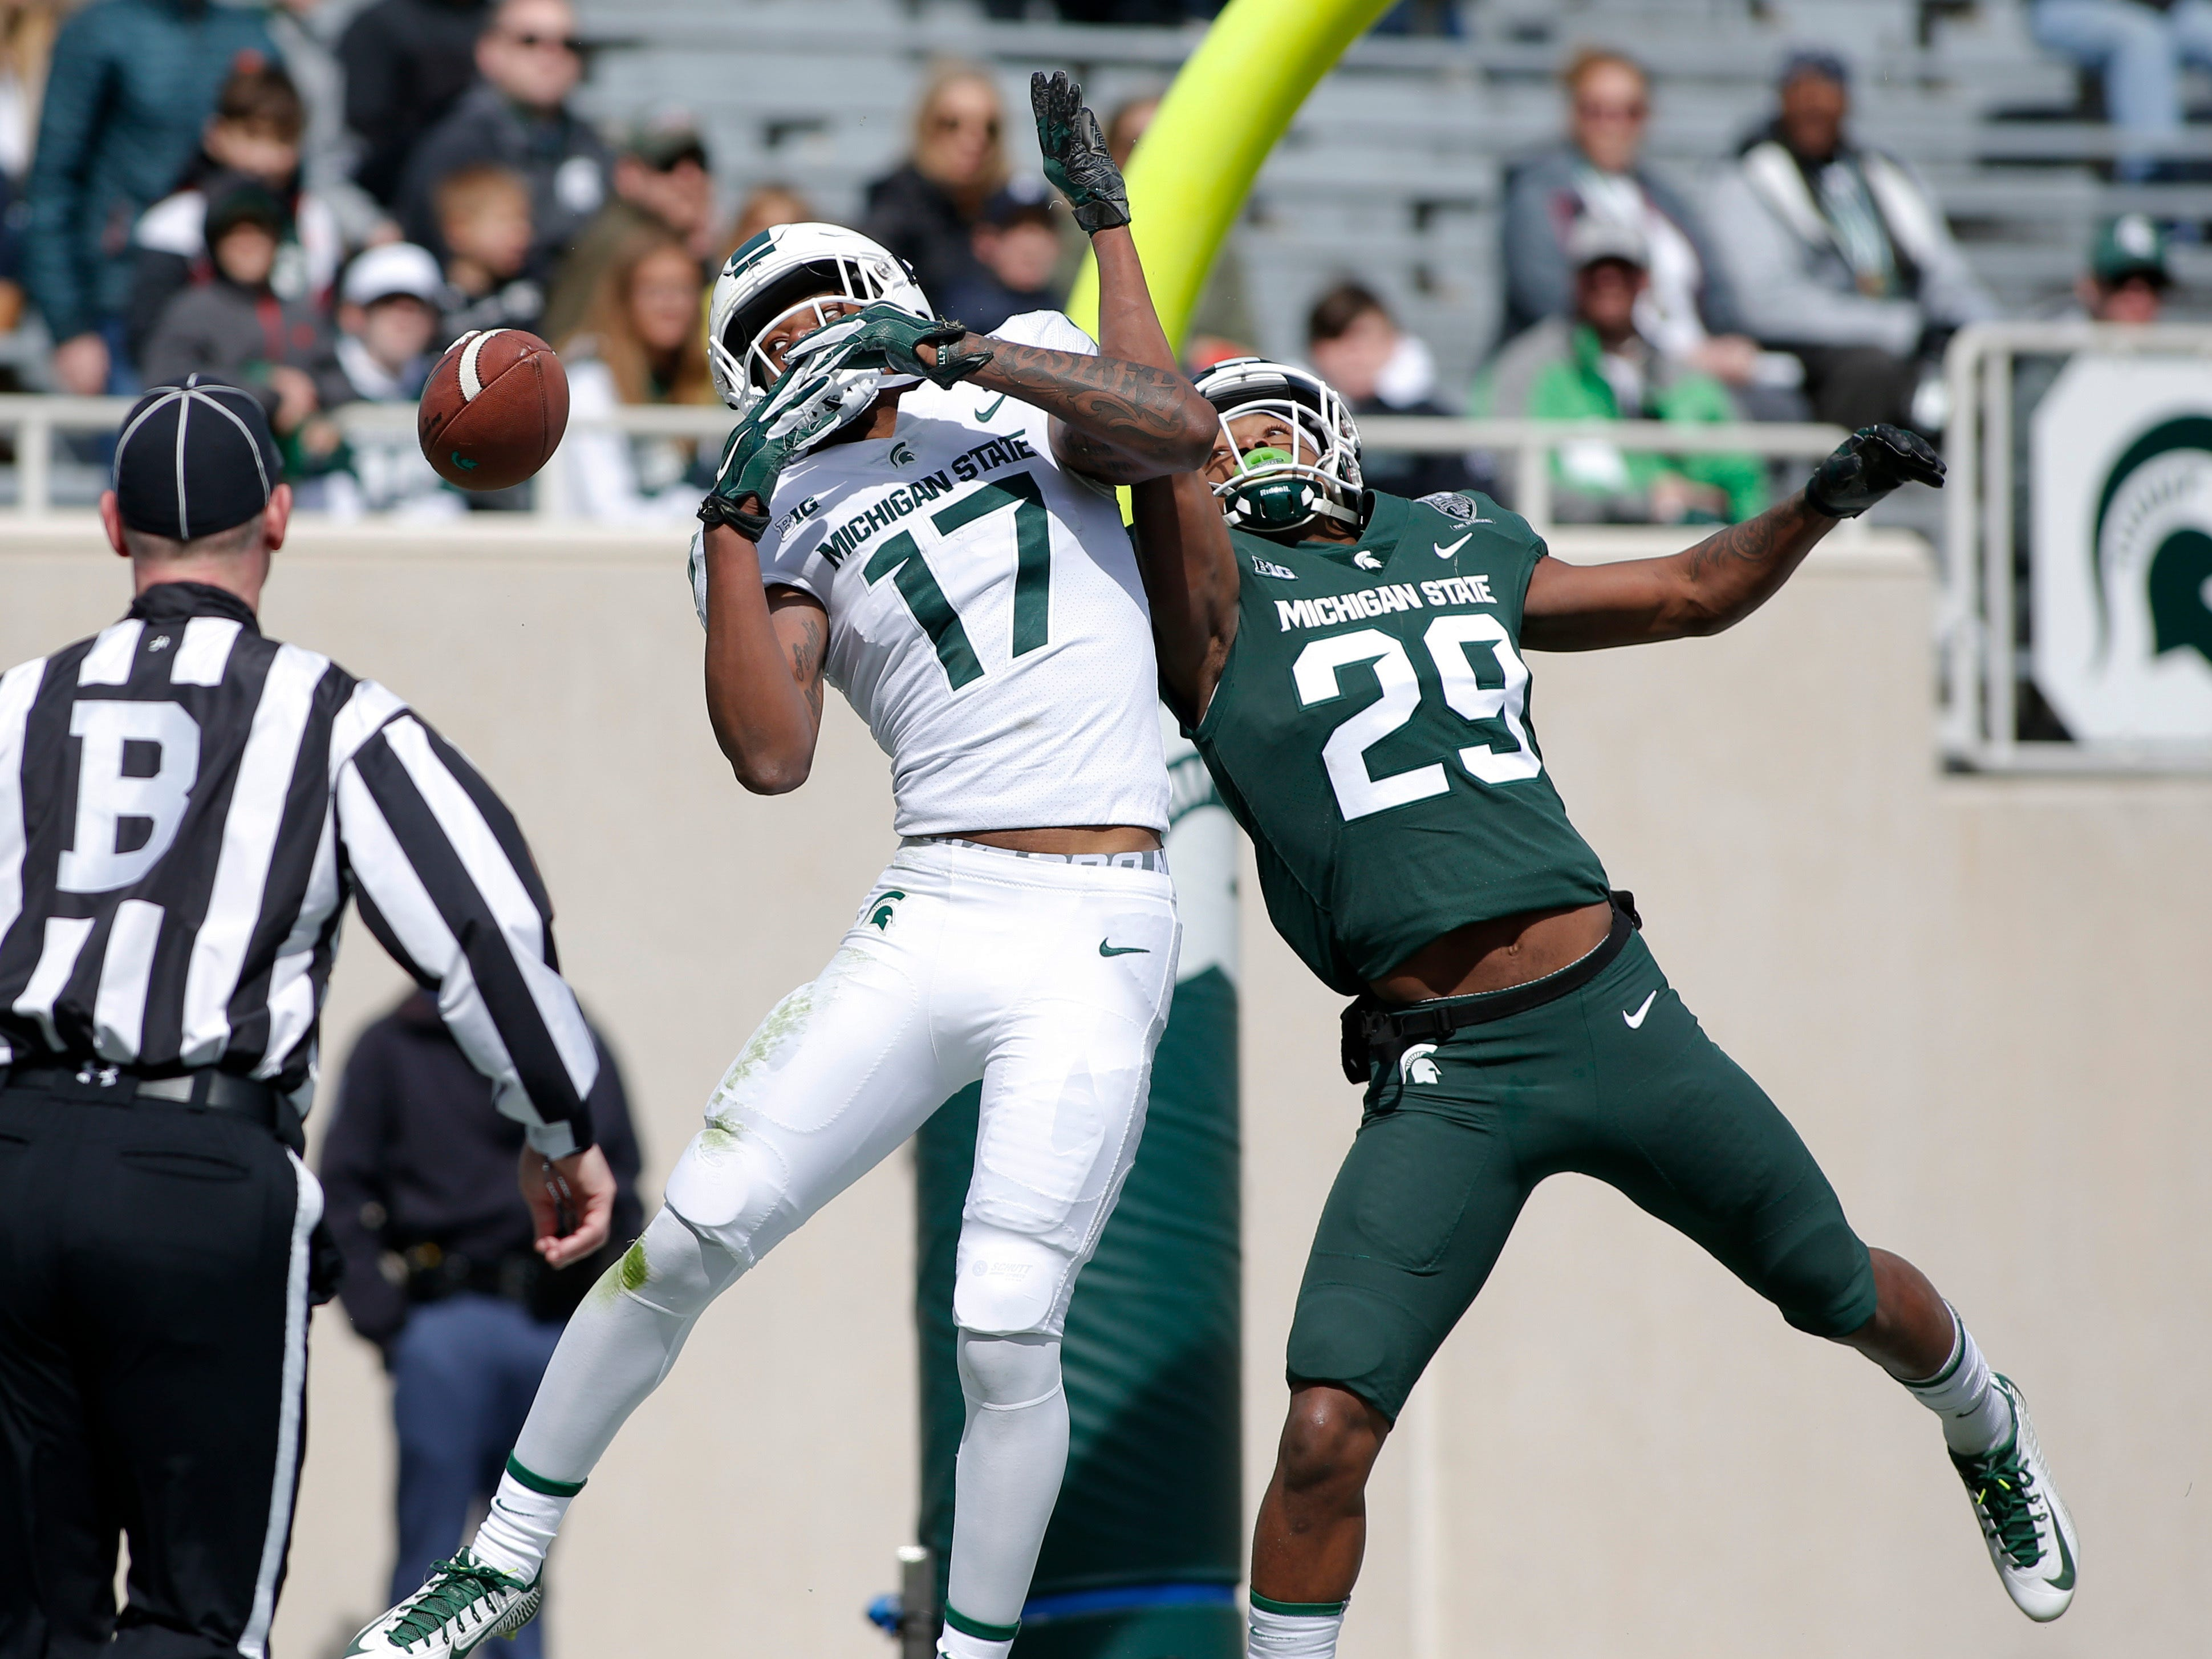 Michigan State's Shakur Brown, right, breaks up a pass intended for Tre Mosley during a spring scrimmage Saturday, April 13, 2019, in East Lansing.